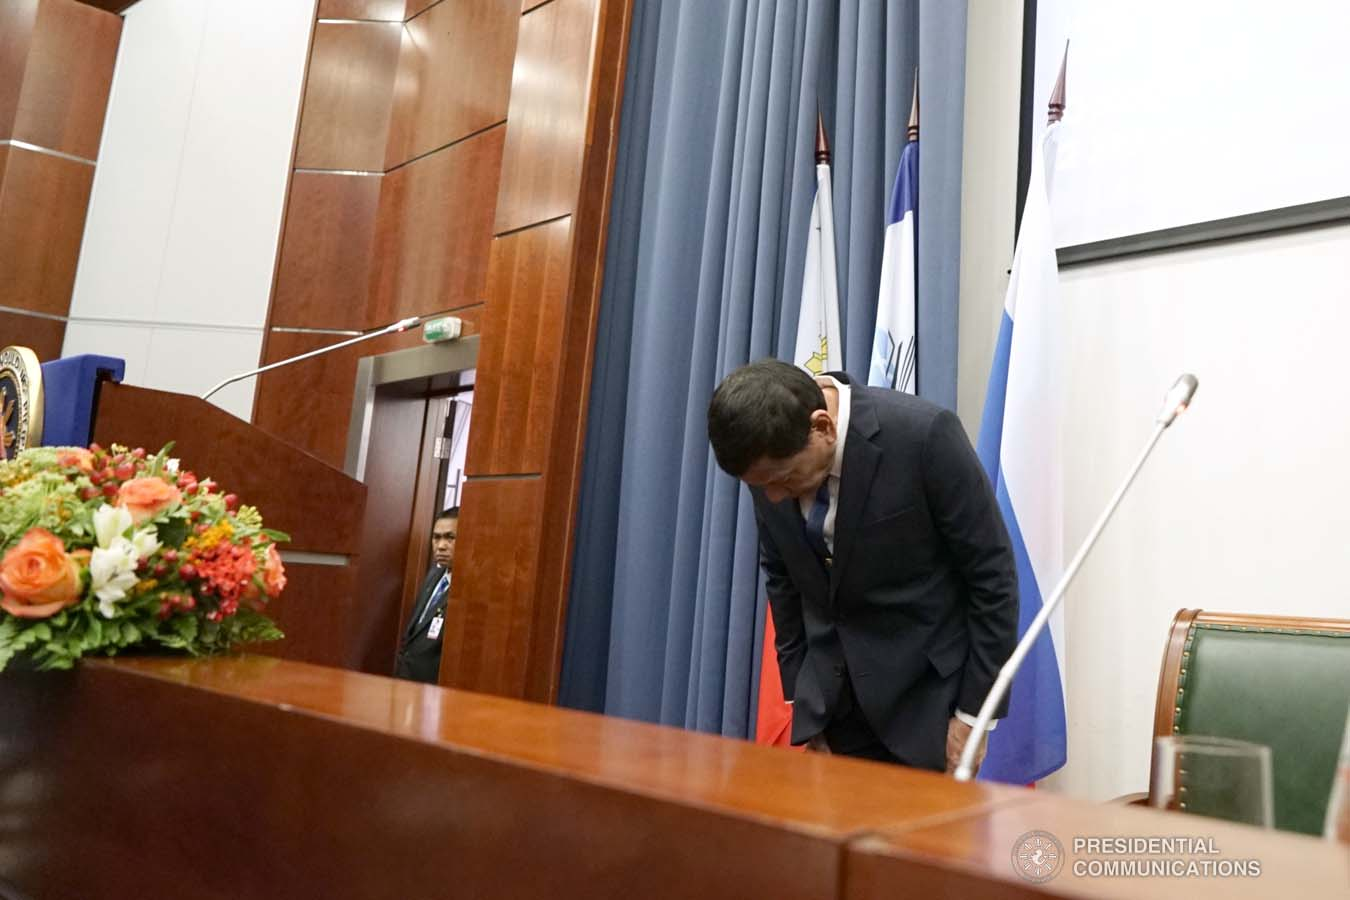 President Rodrigo Roa Duterte takes a bow before the guests during the conferment of the honorary doctorate degree at the Moscow State Institute of International Relations (MGIMO) University in Moscow, Russian Federation on October 05, 2019. KING RODRIGUEZ/PRESIDENTIAL PHOTO